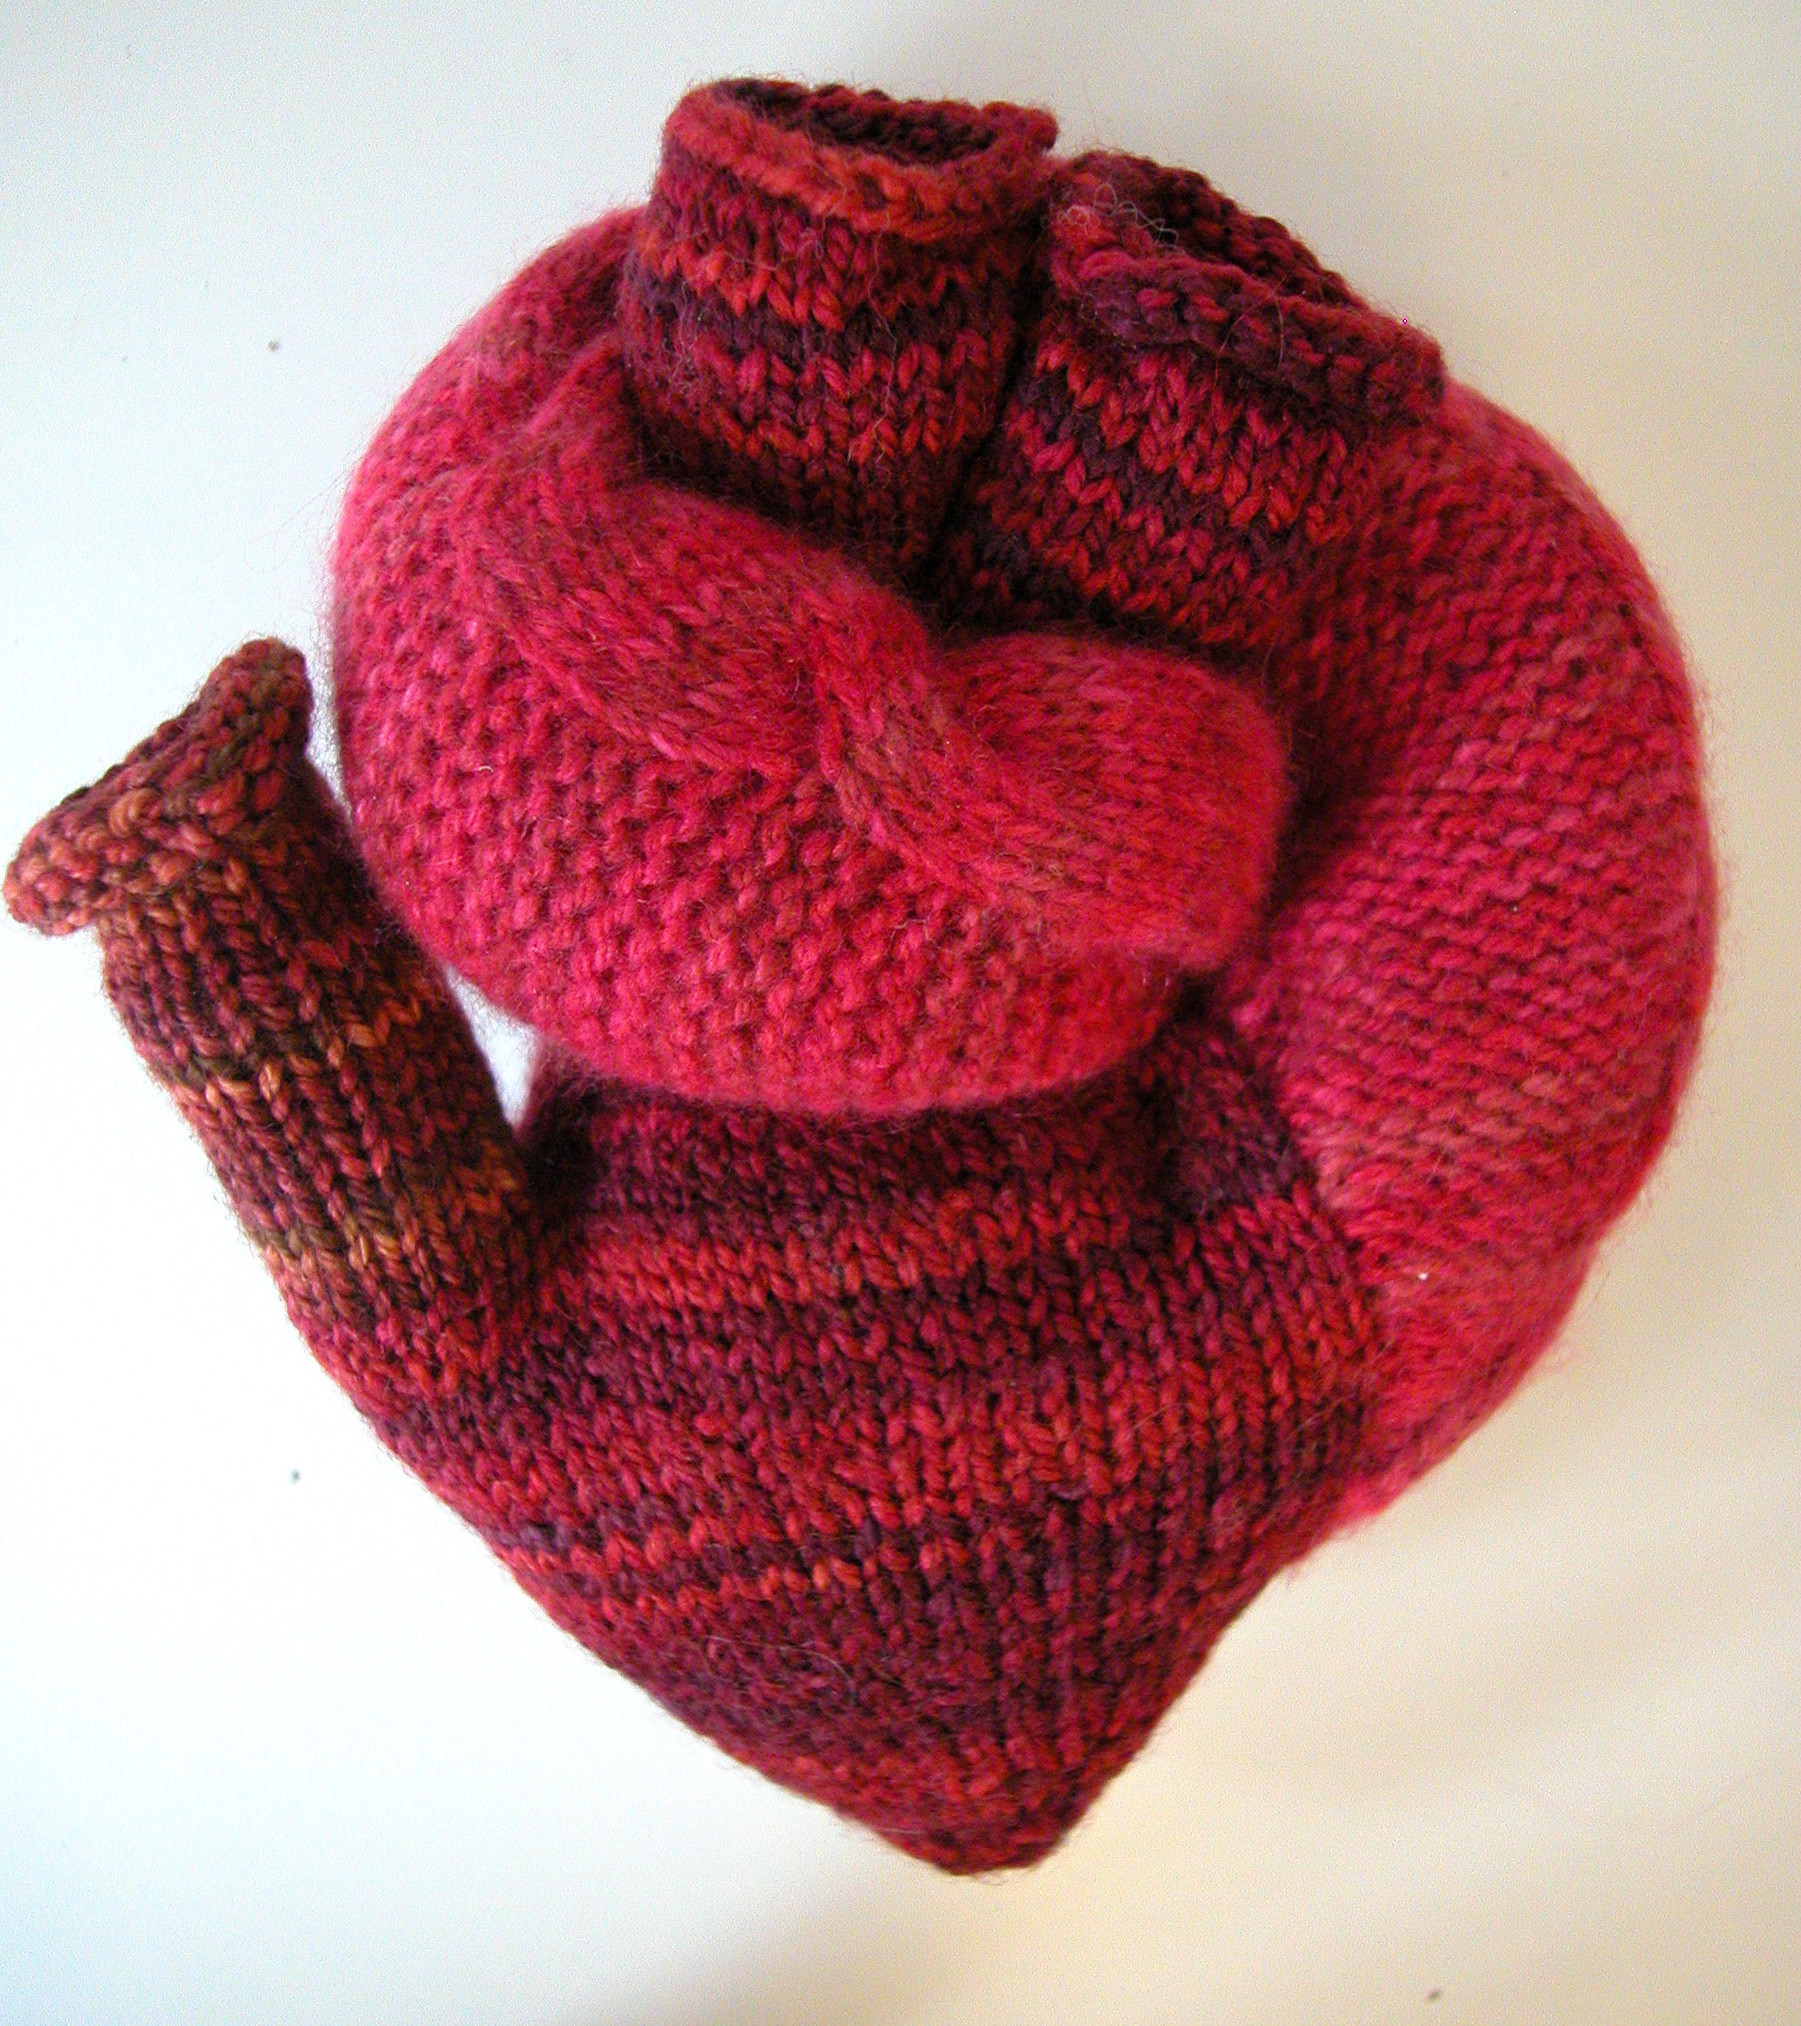 heart knit pattern | the knit cafe